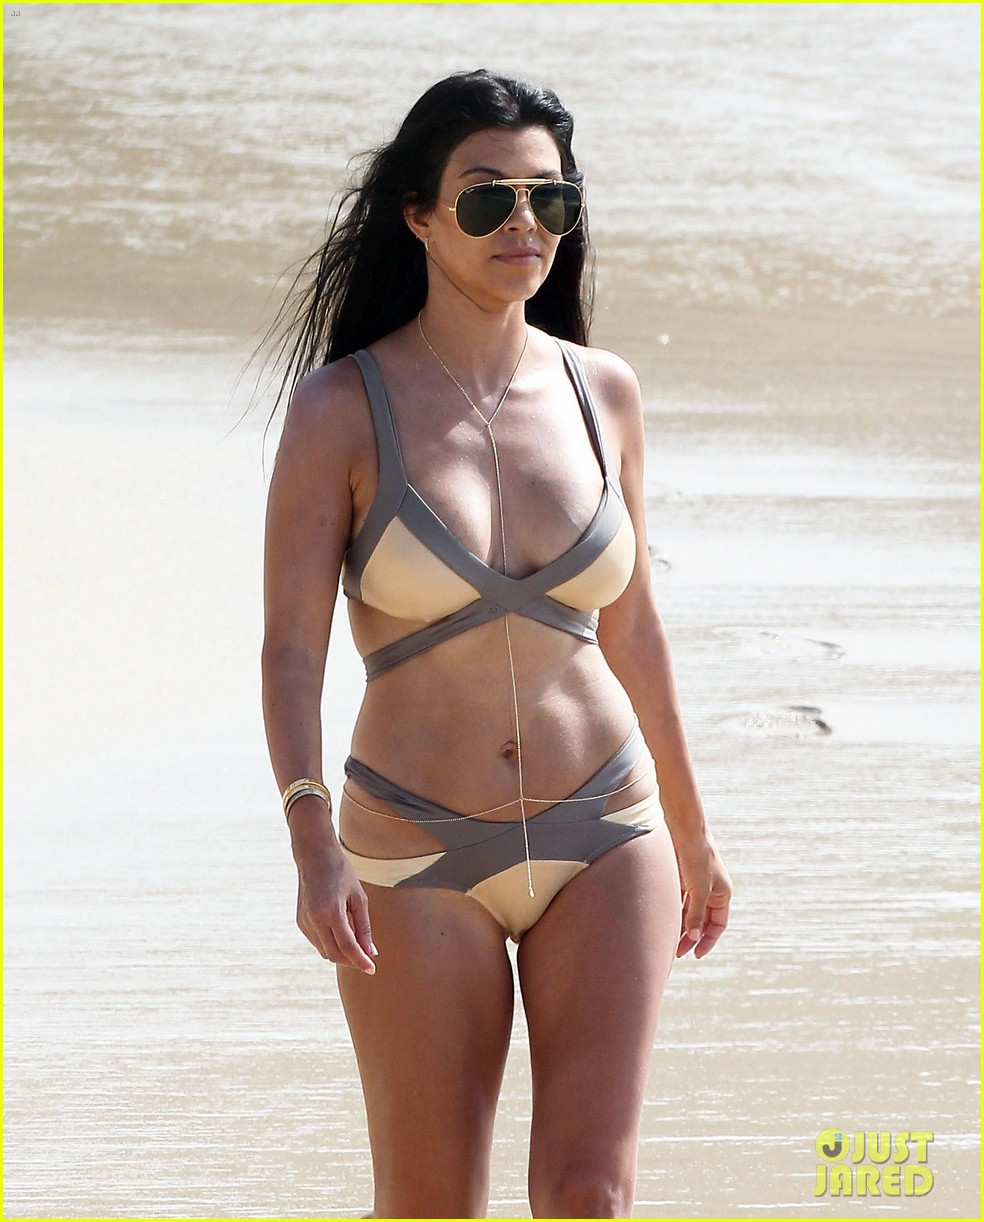 Kardashian bikini wallpapers completely agree